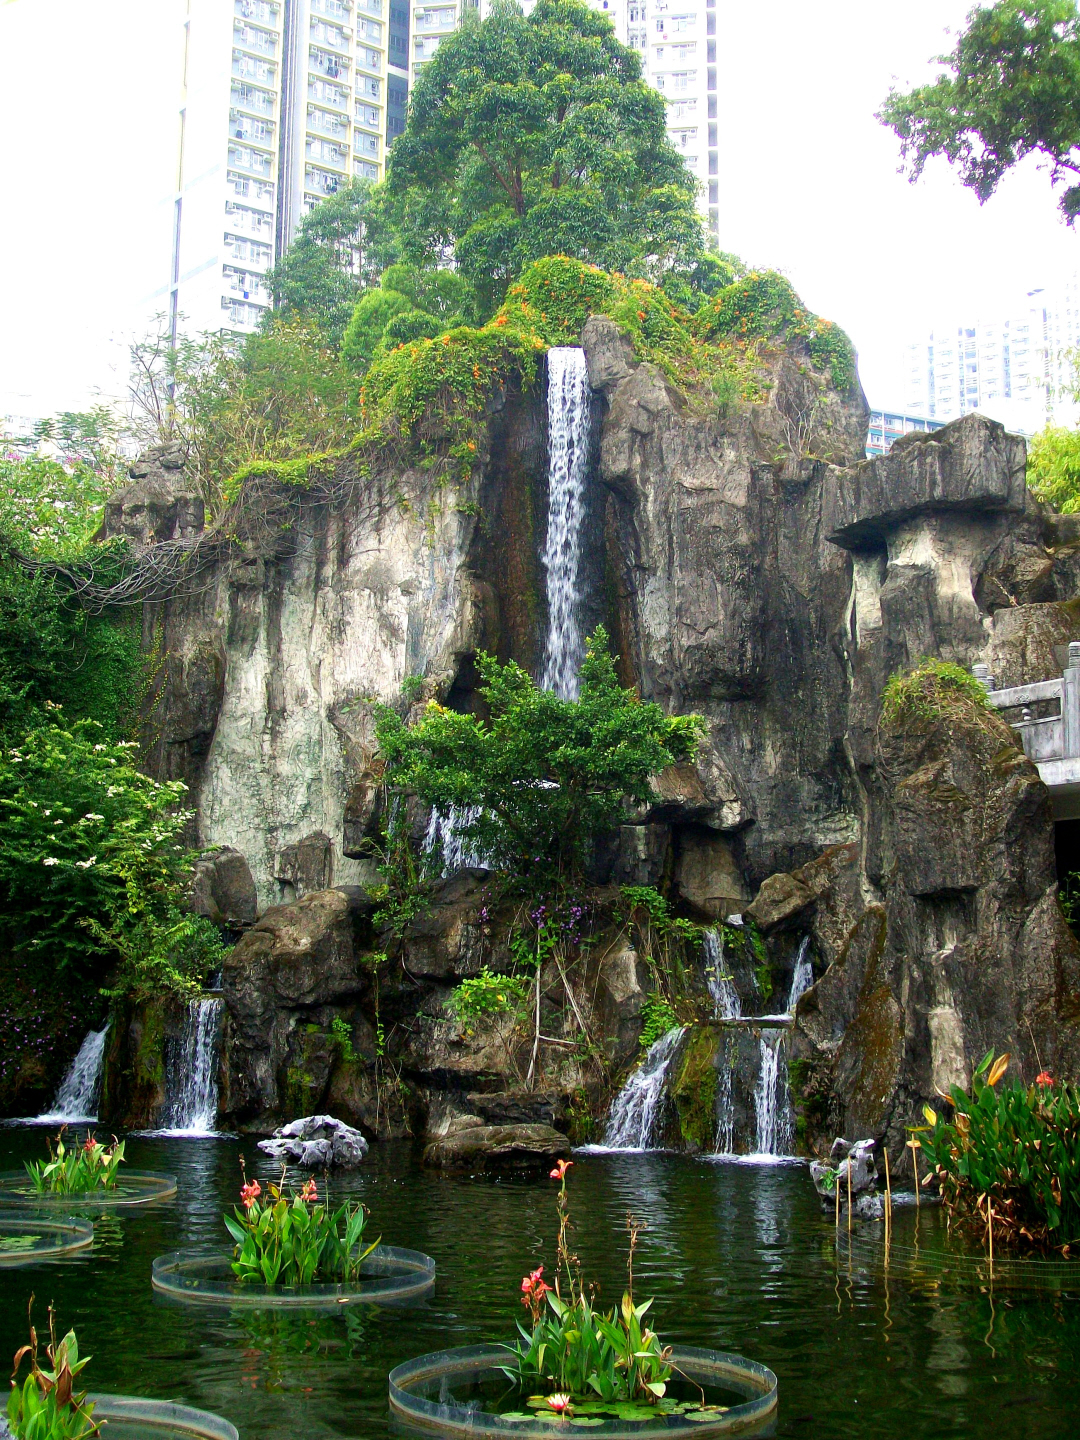 Taoist Garden behind the Wong Tai Sin Temple - Kowloon